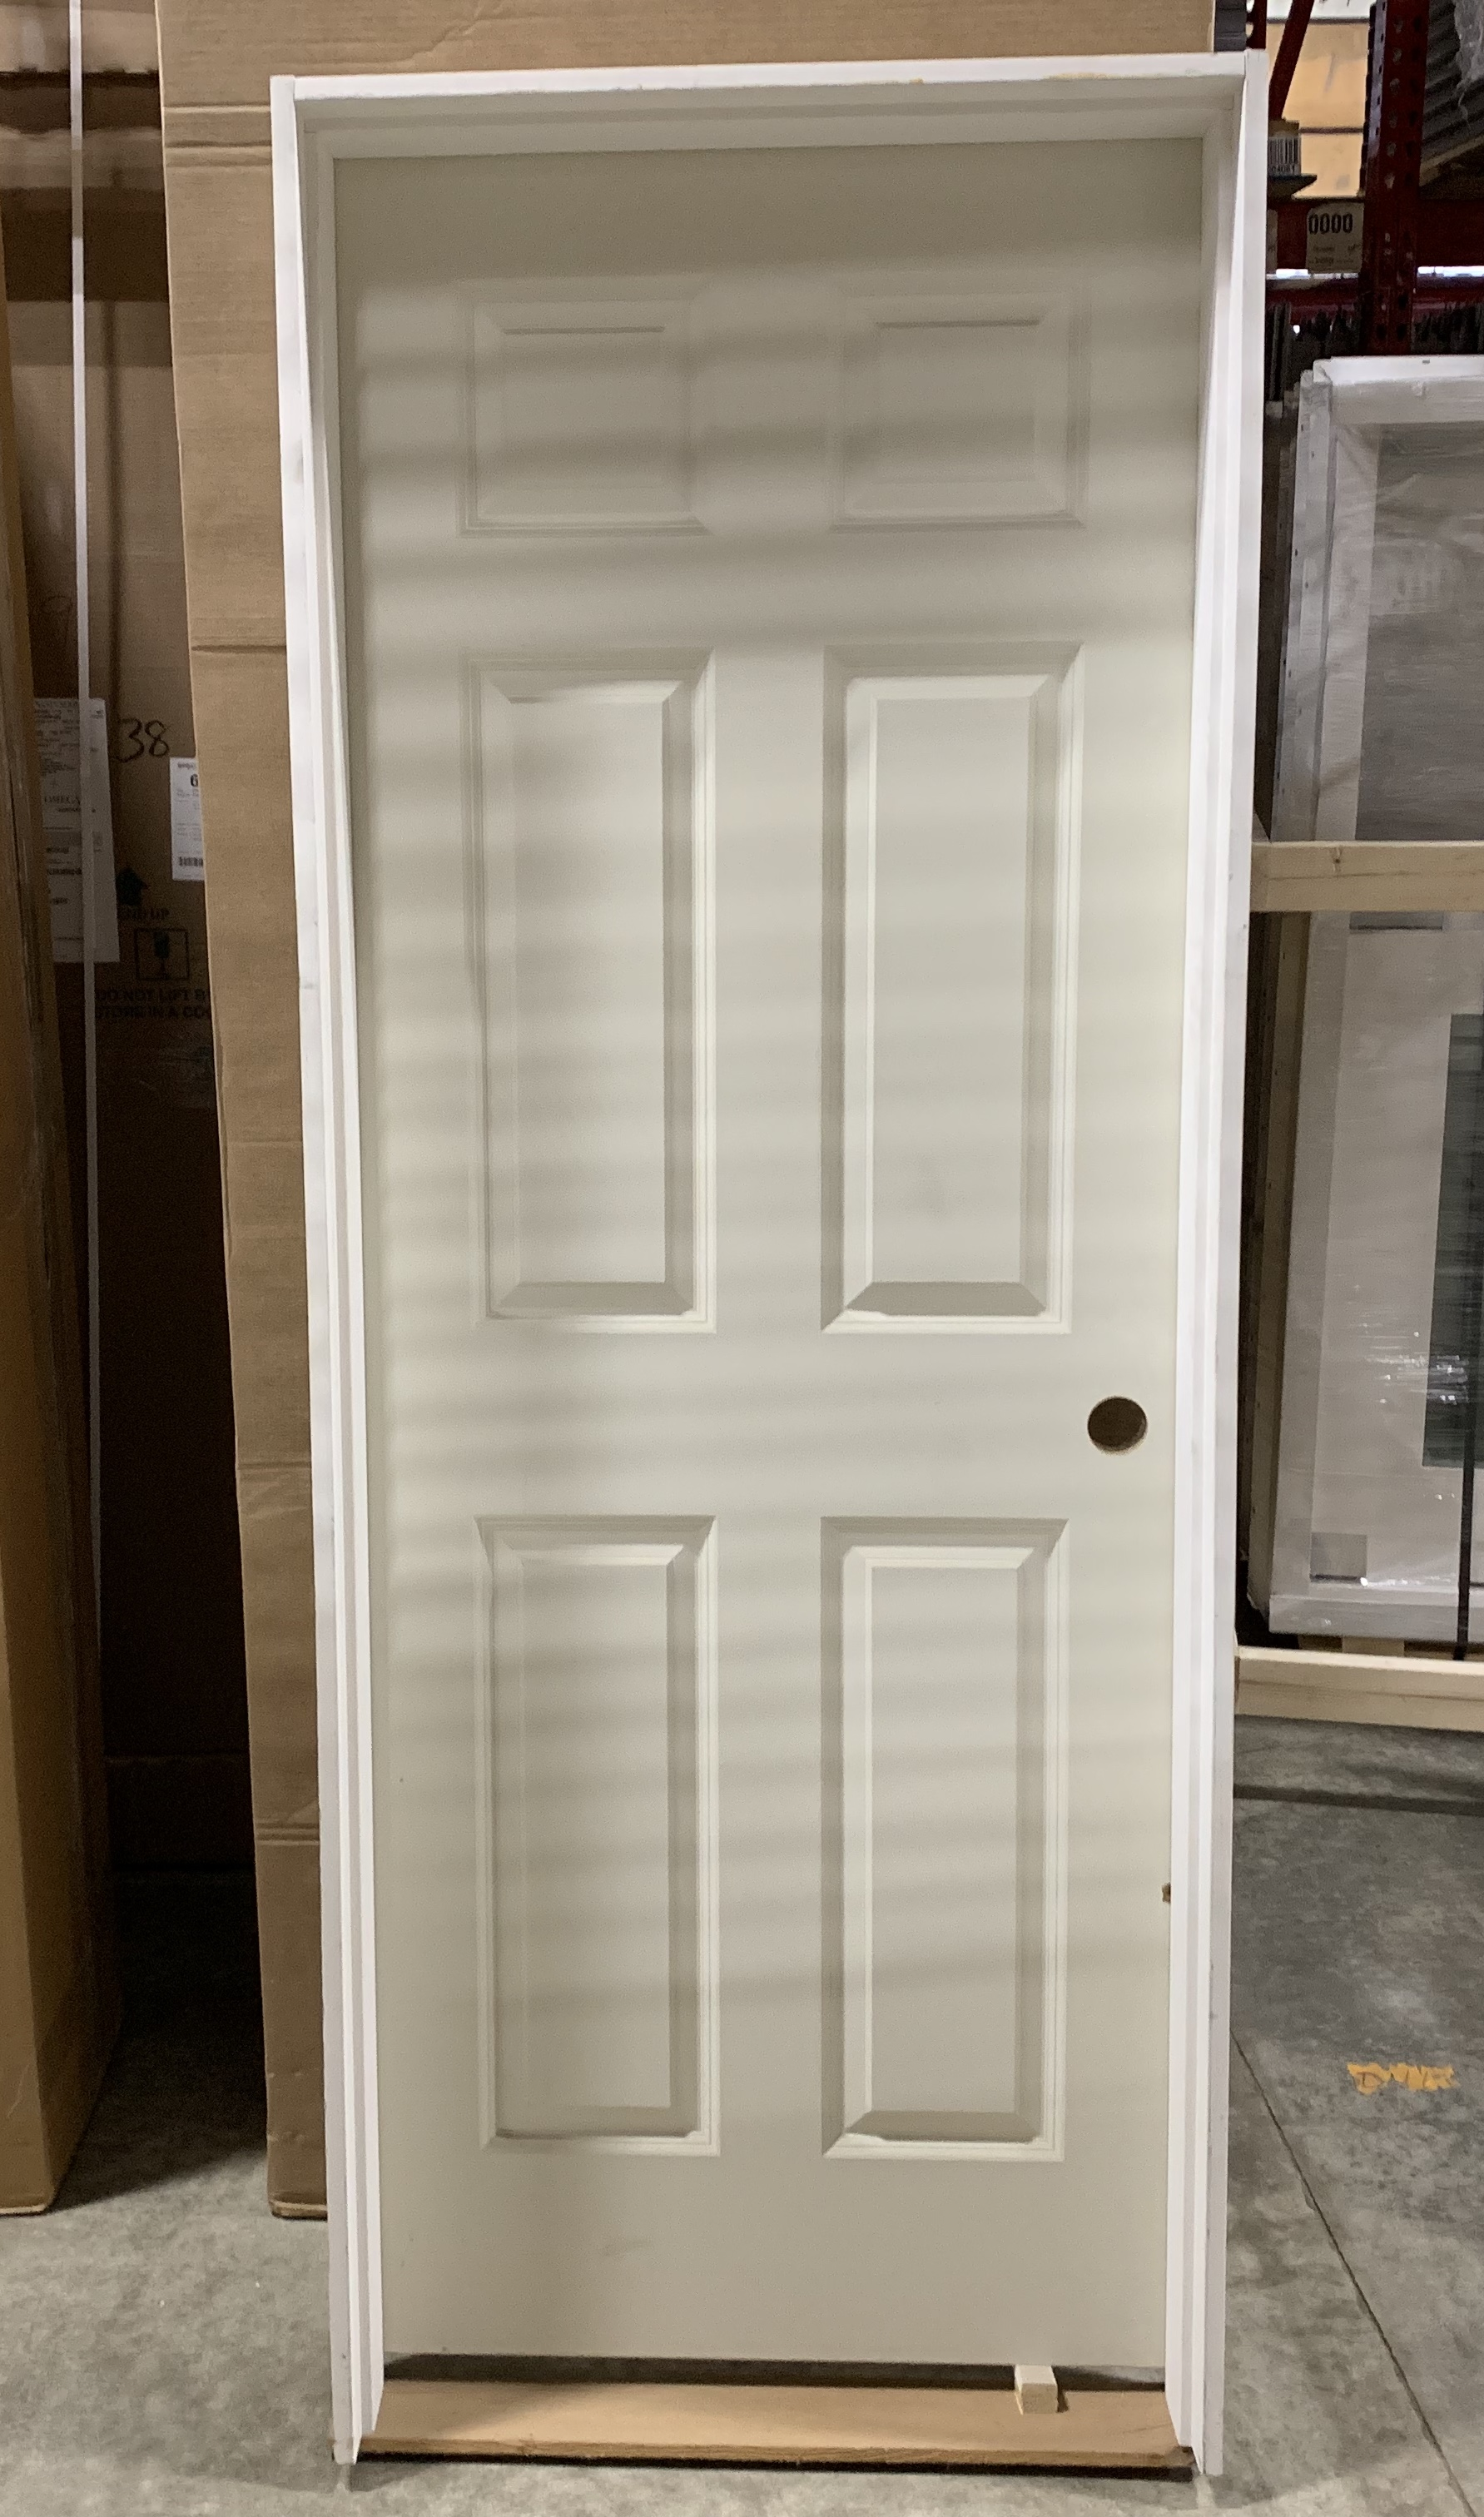 BROSCO 2668 Interior Single LH Door